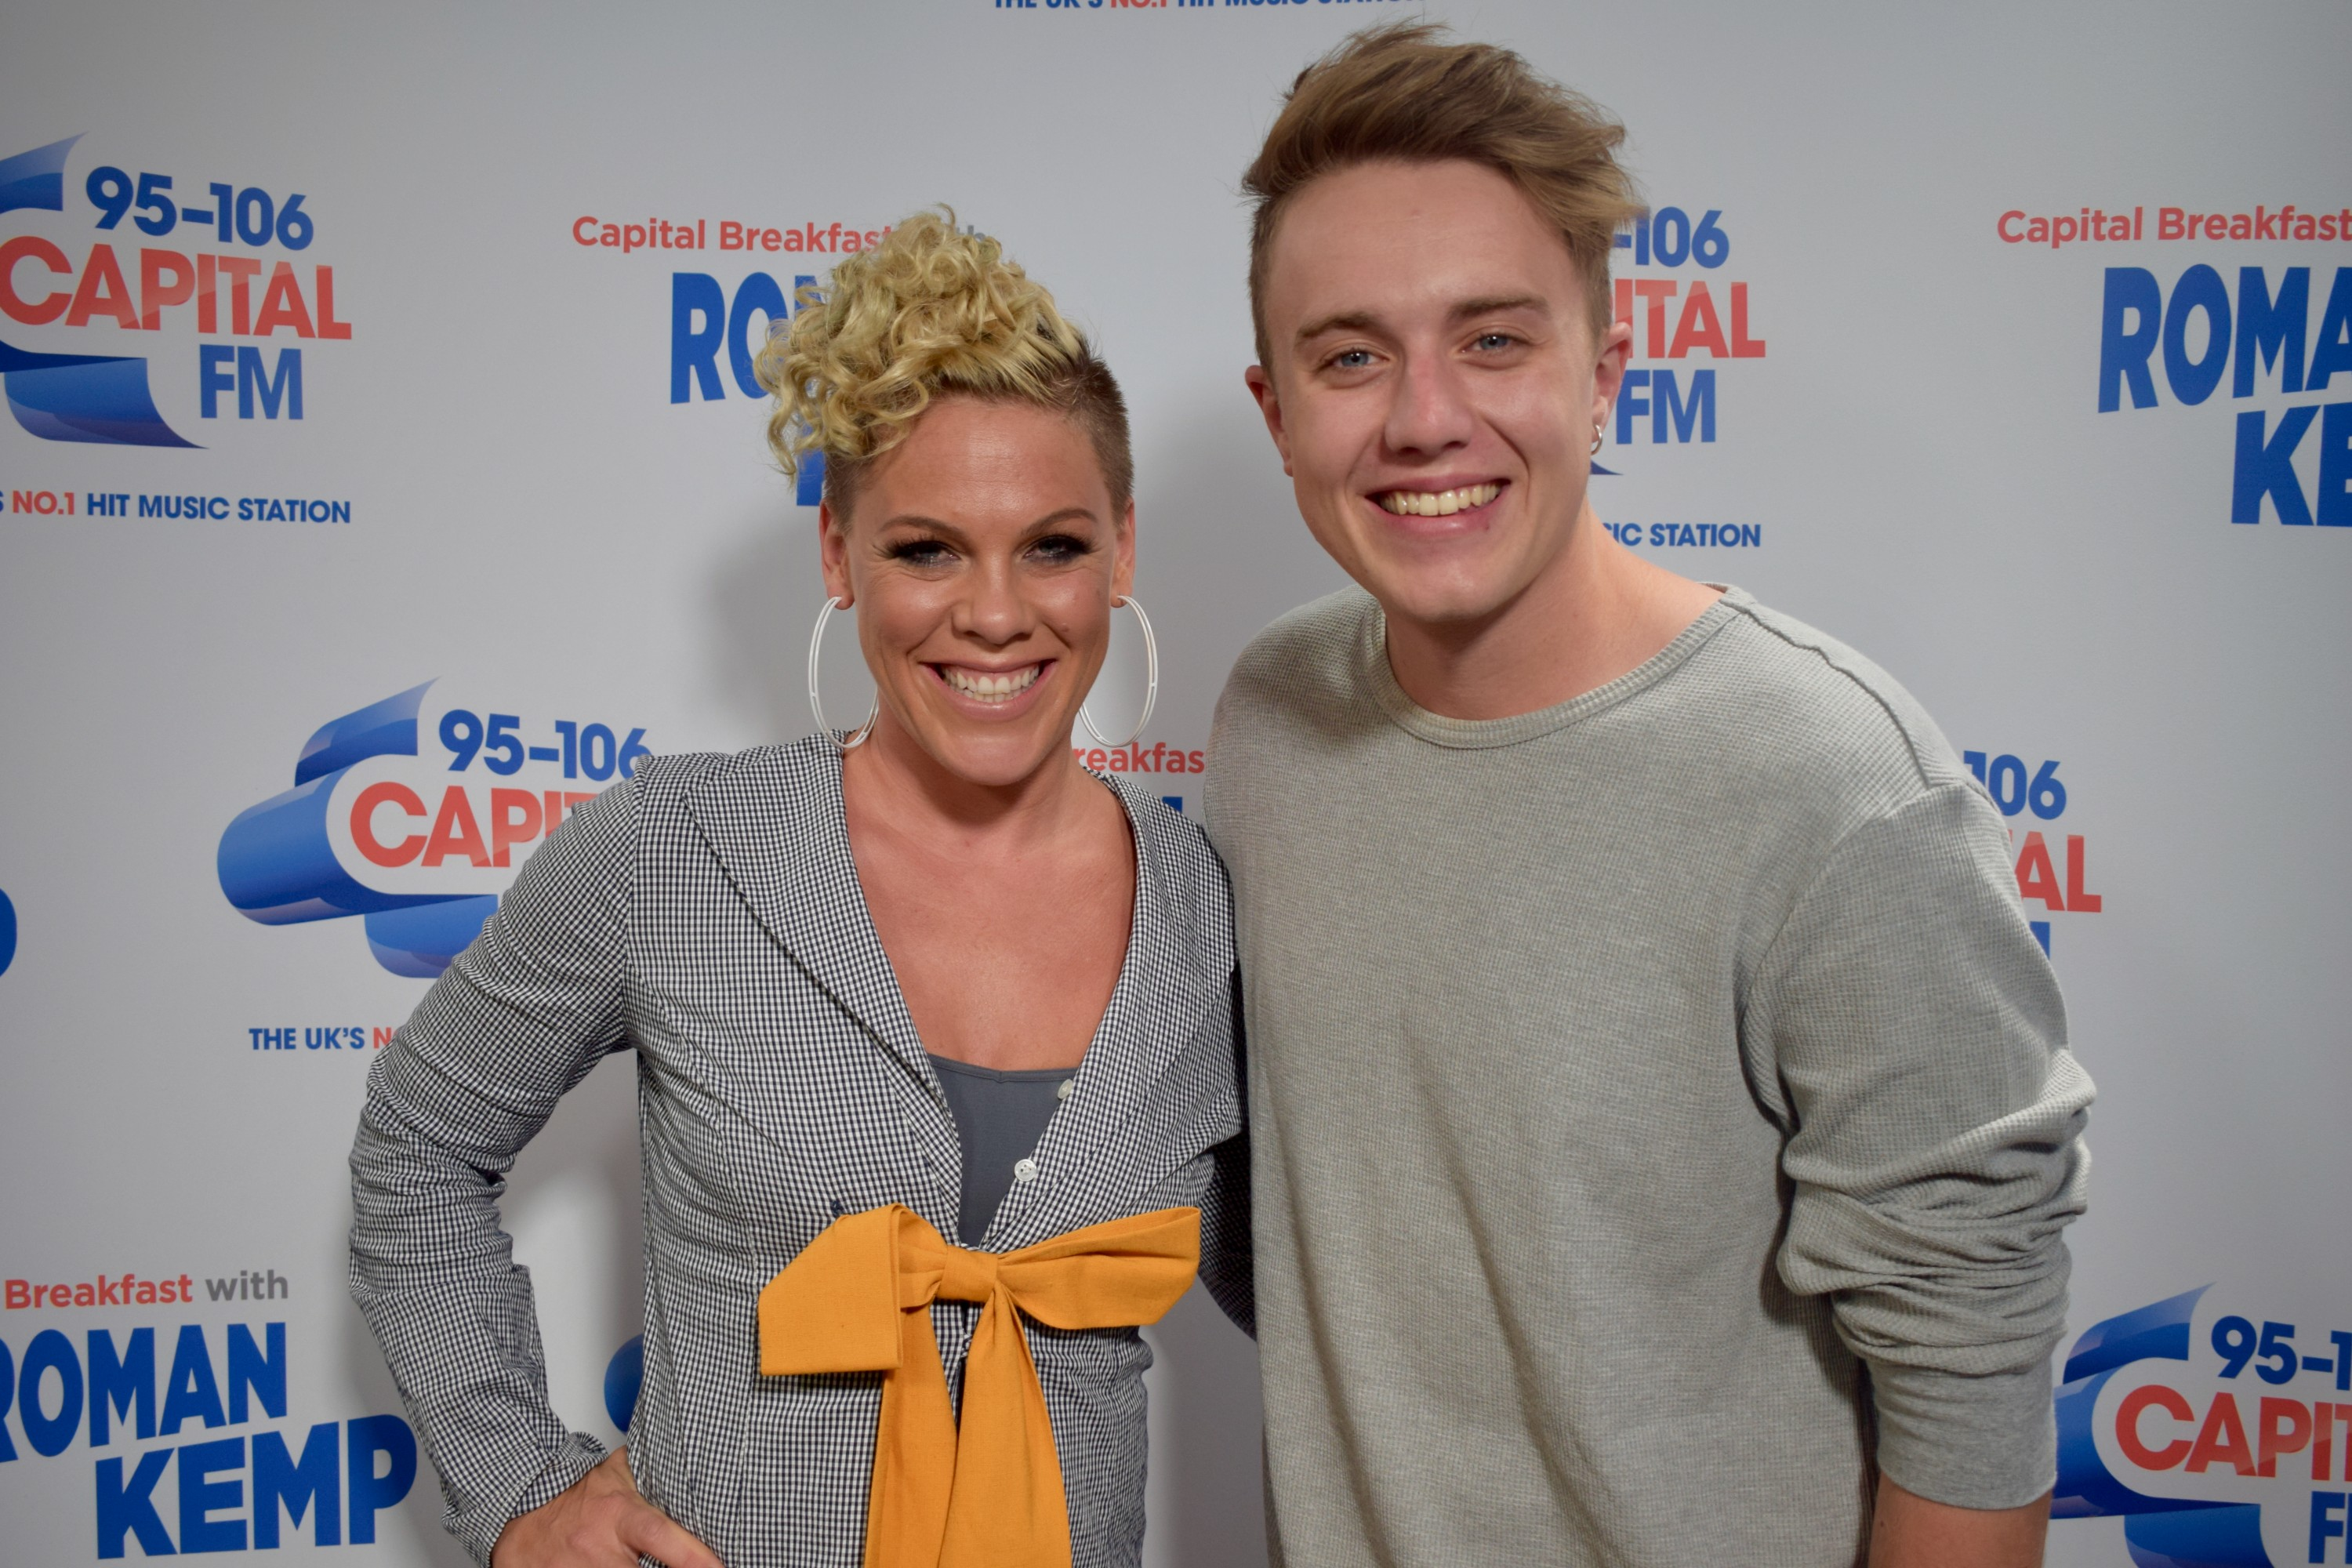 Pink with Capital Breakfast with Roman Kemp